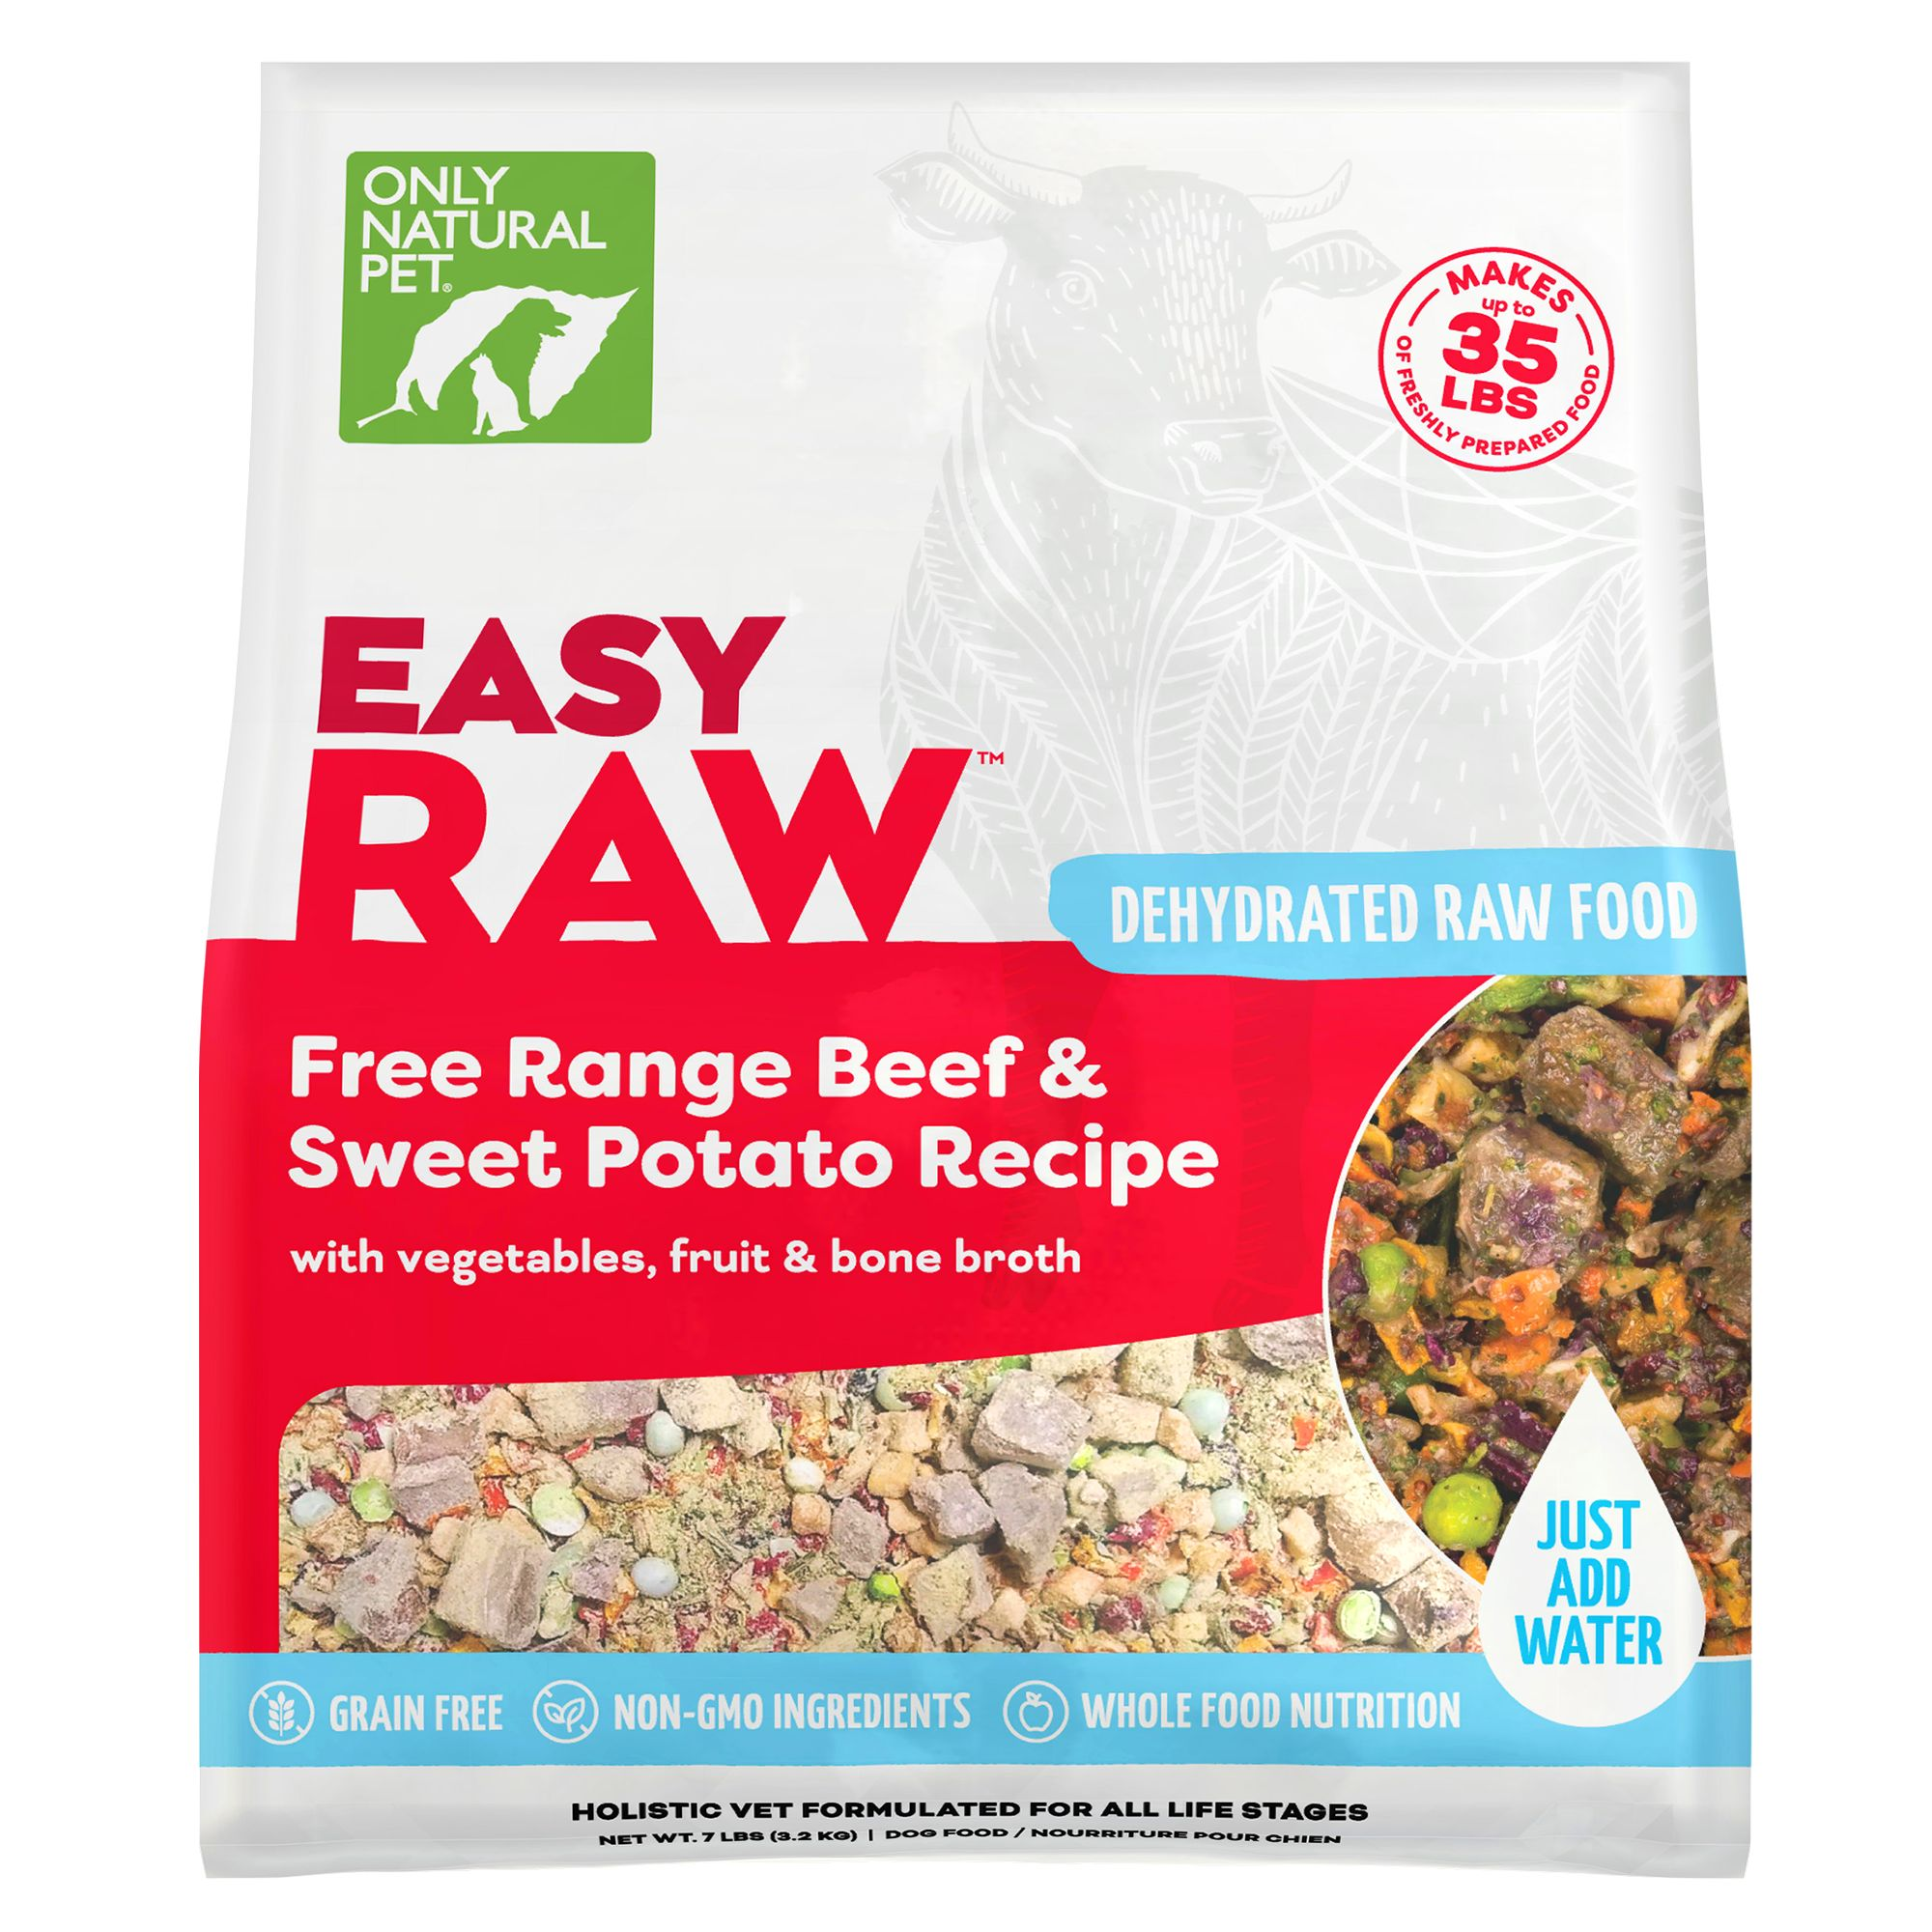 Only Natural Pet EasyRaw Dog Food - Raw, Grain Free, Dehydrated, Beef and Sweet Potato size: 7 Lb